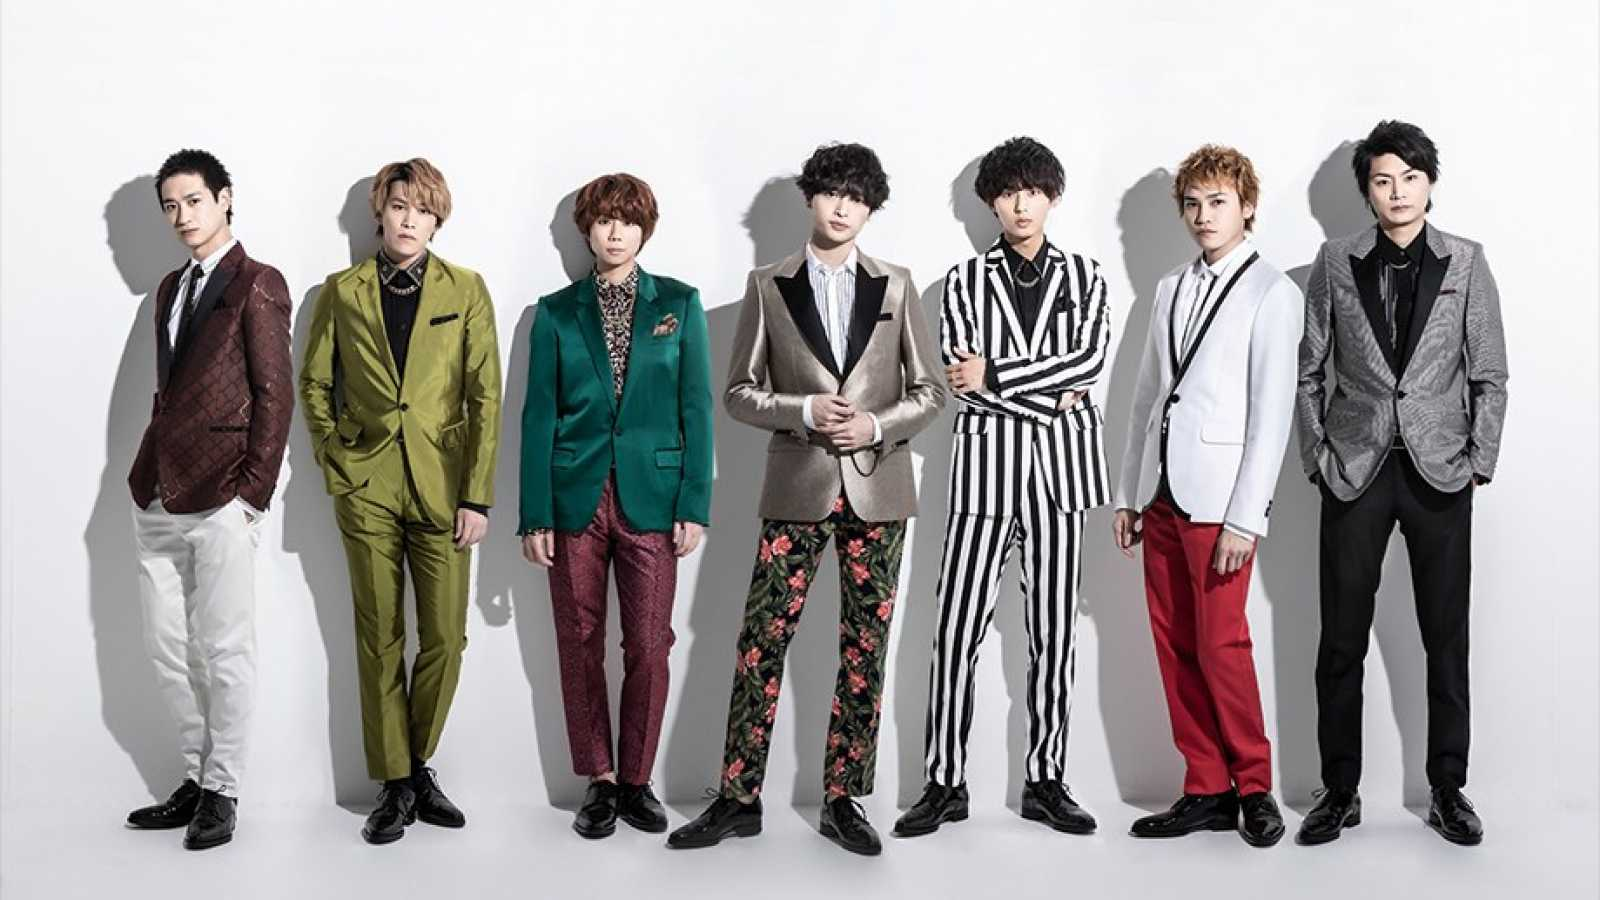 Kis-My-Ft2 anuncia nuevo single © Kis-My-Ft2. All rights reserved.